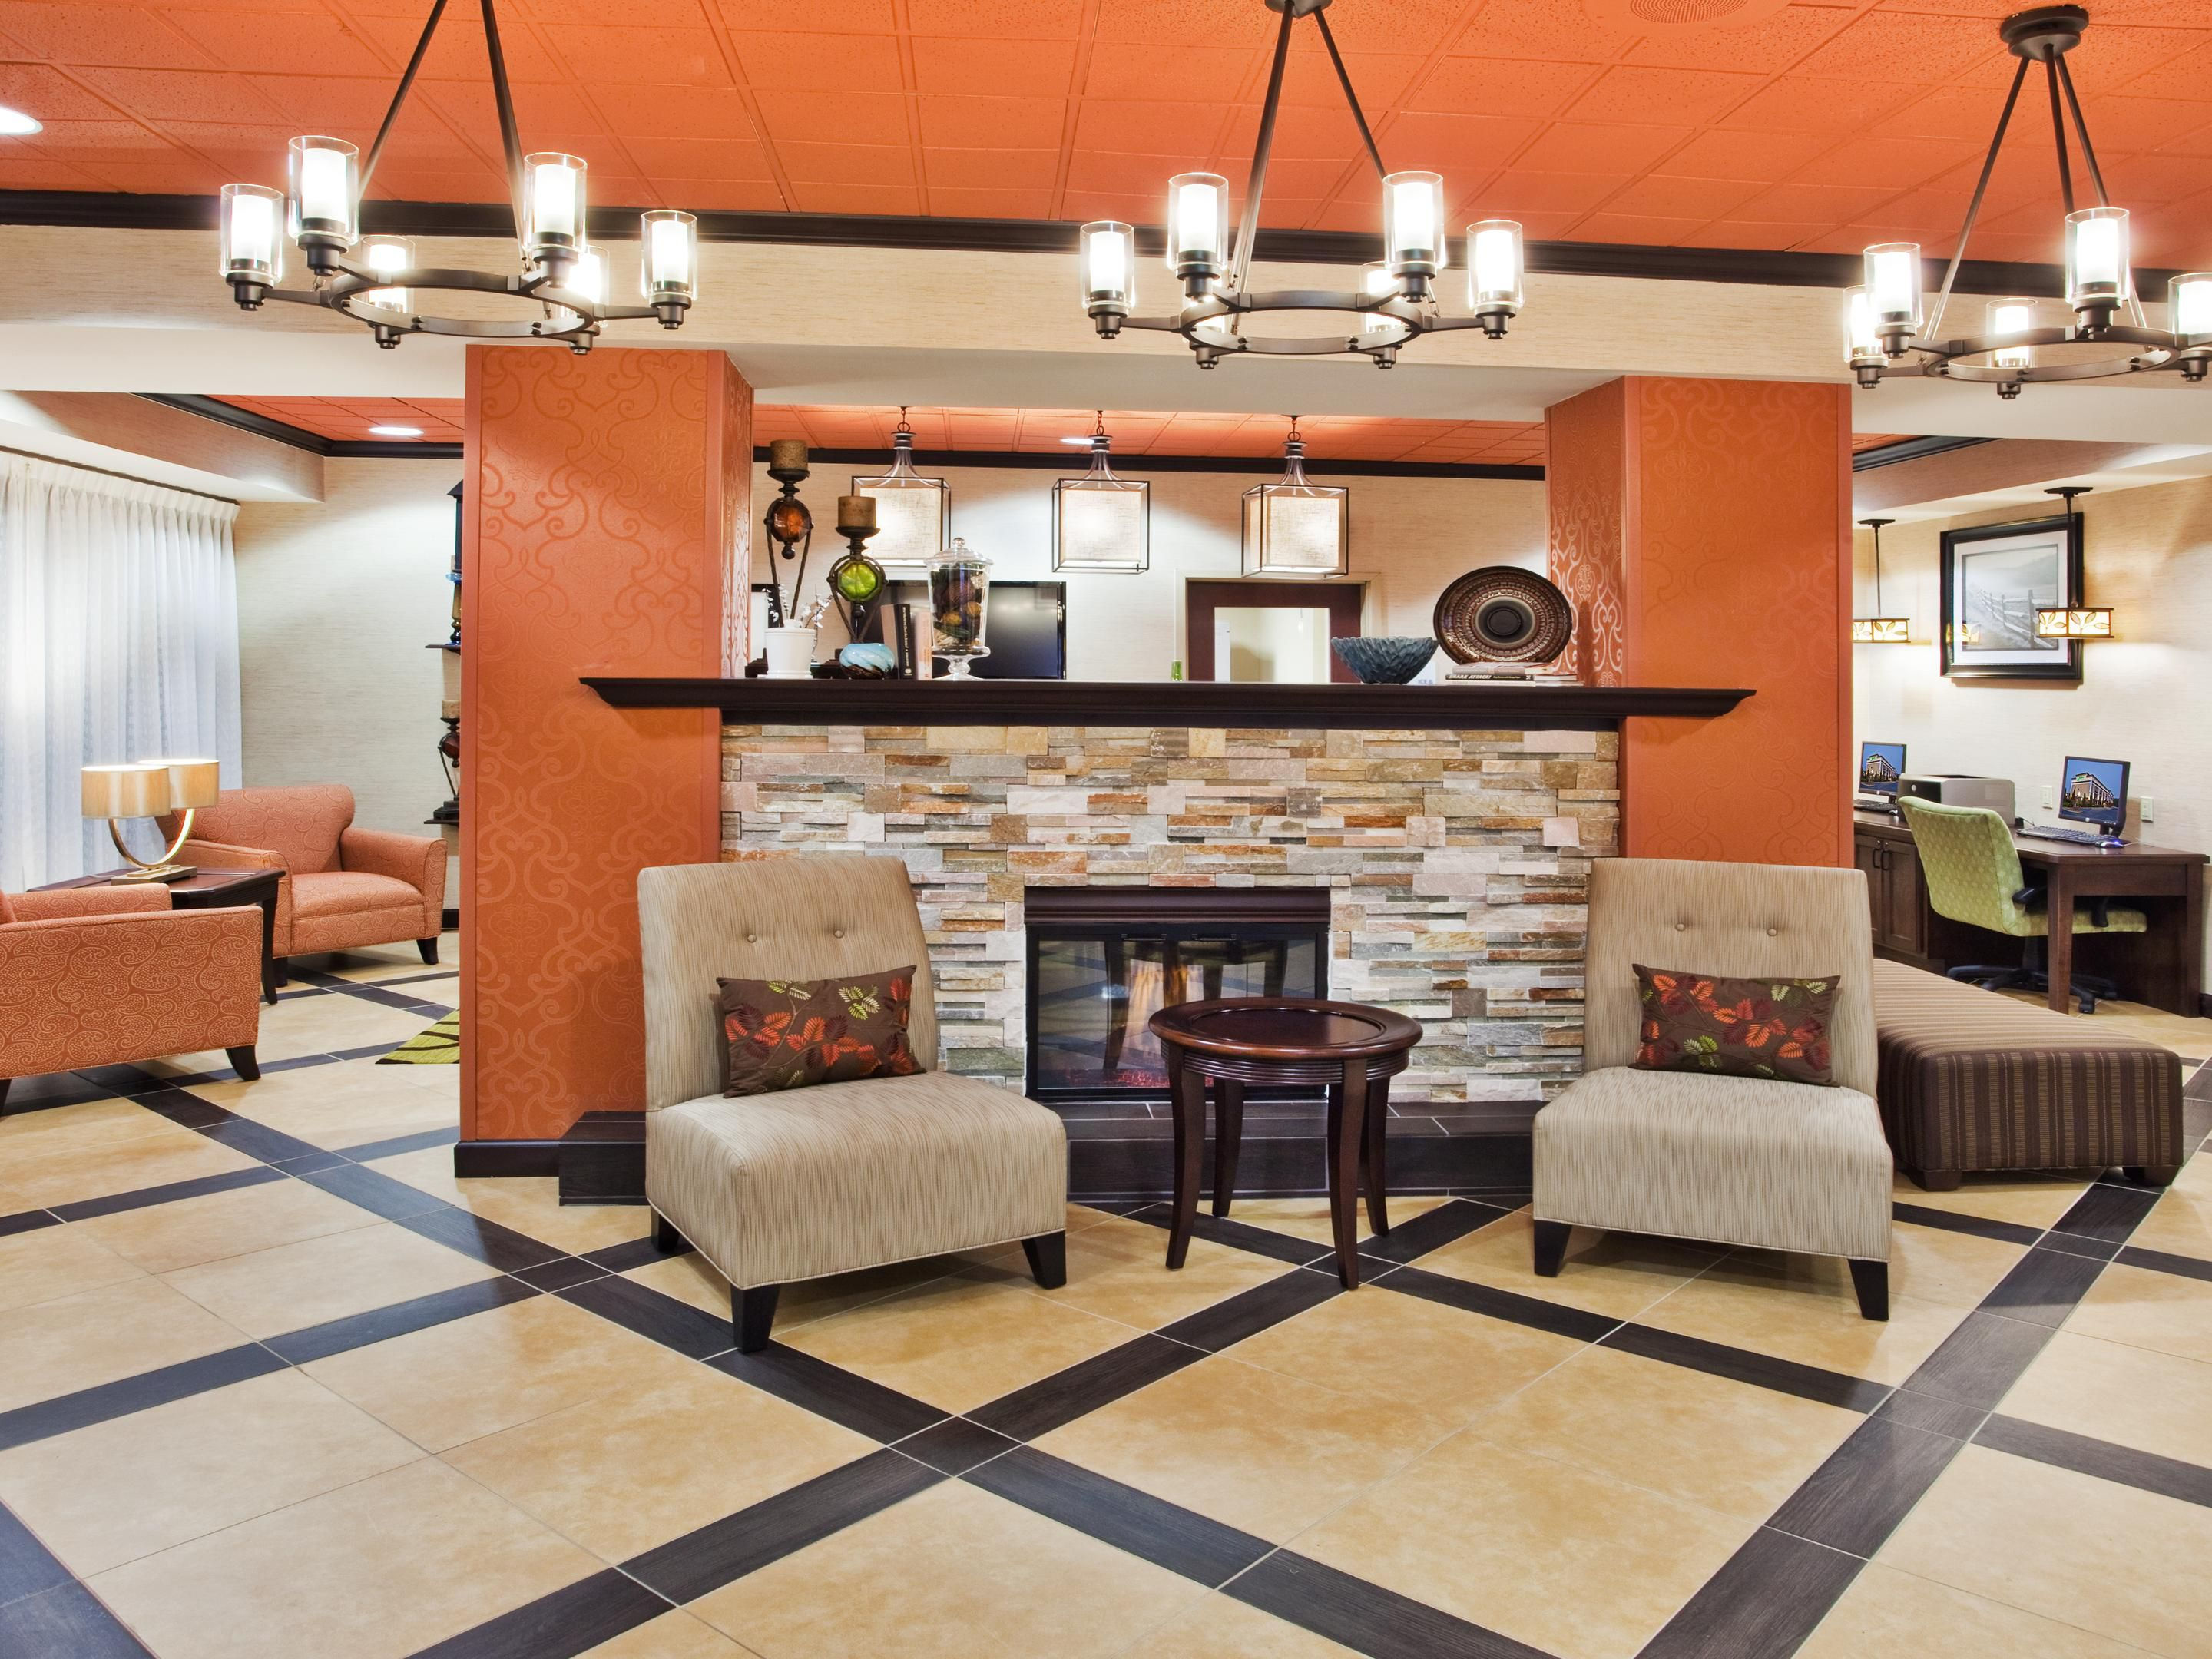 Our lobby is sure to make you feel right at home.